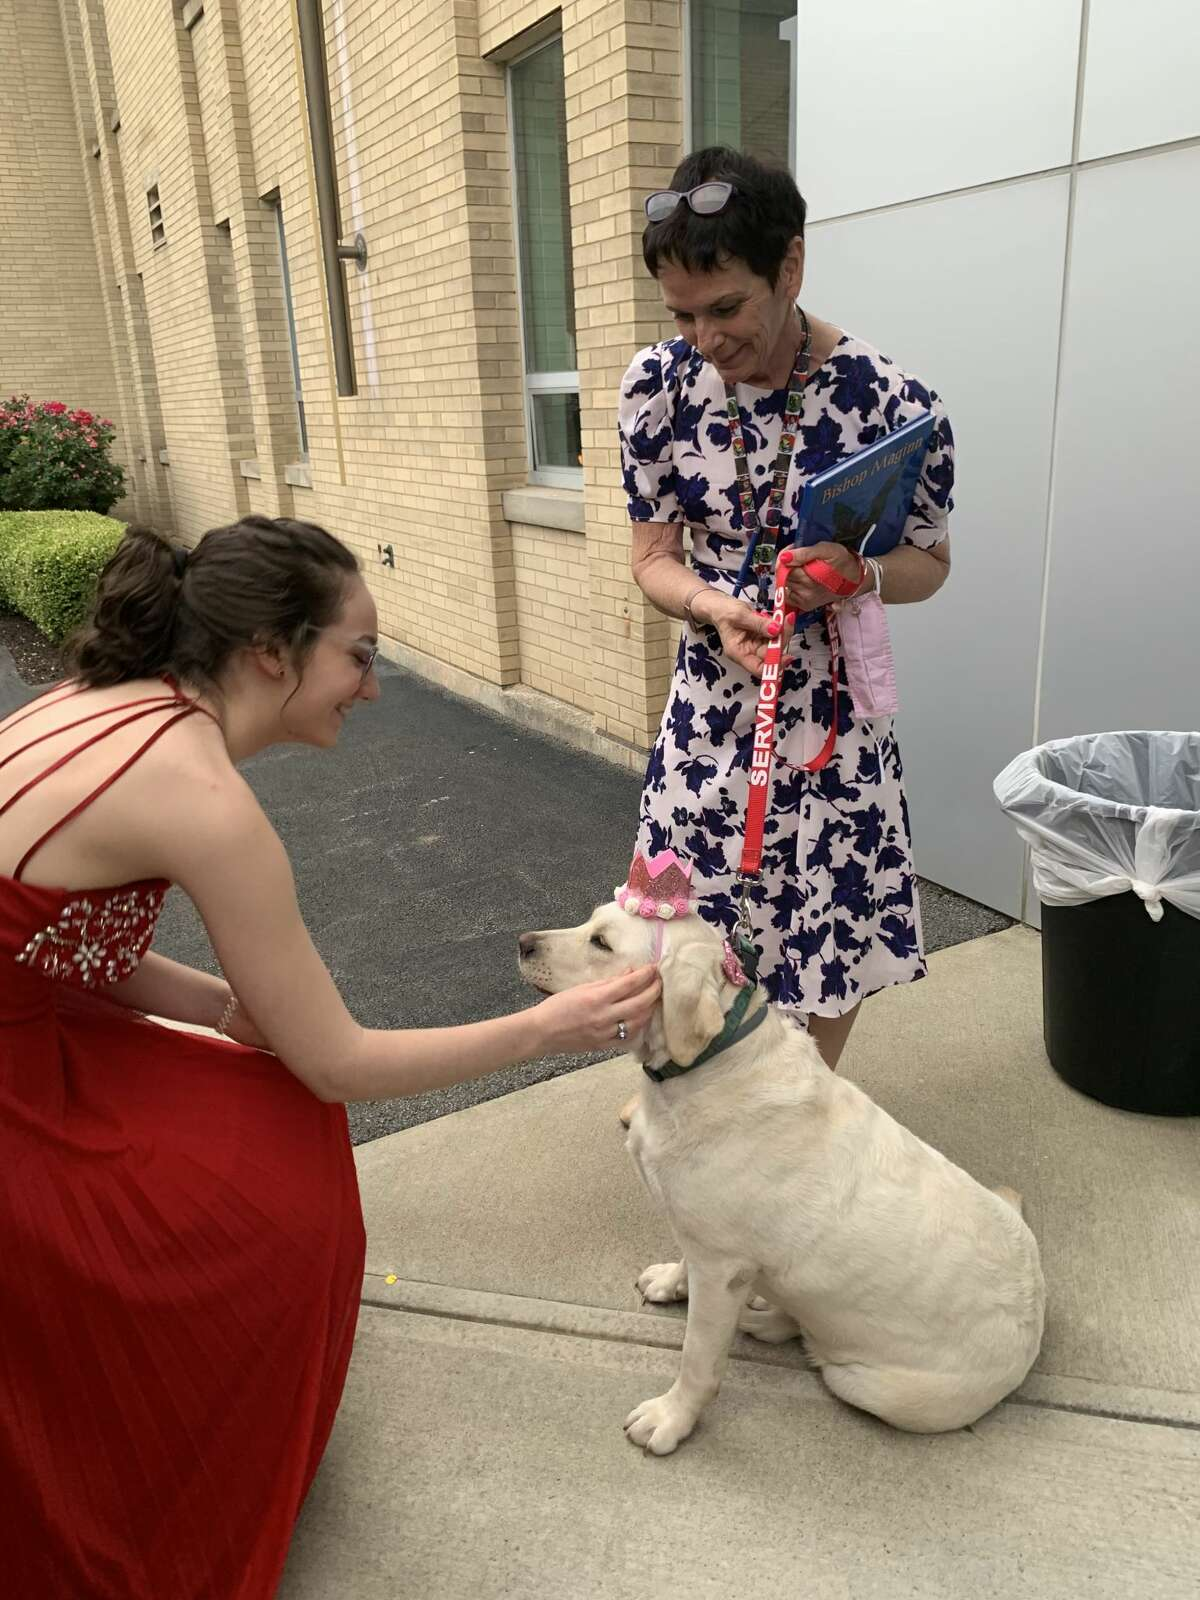 Katie Lewis, valedictorian of the Bishop Maginn High School Class of 2021, crowned the school's therapy dog prom queen on Friday, June 11, 2021.